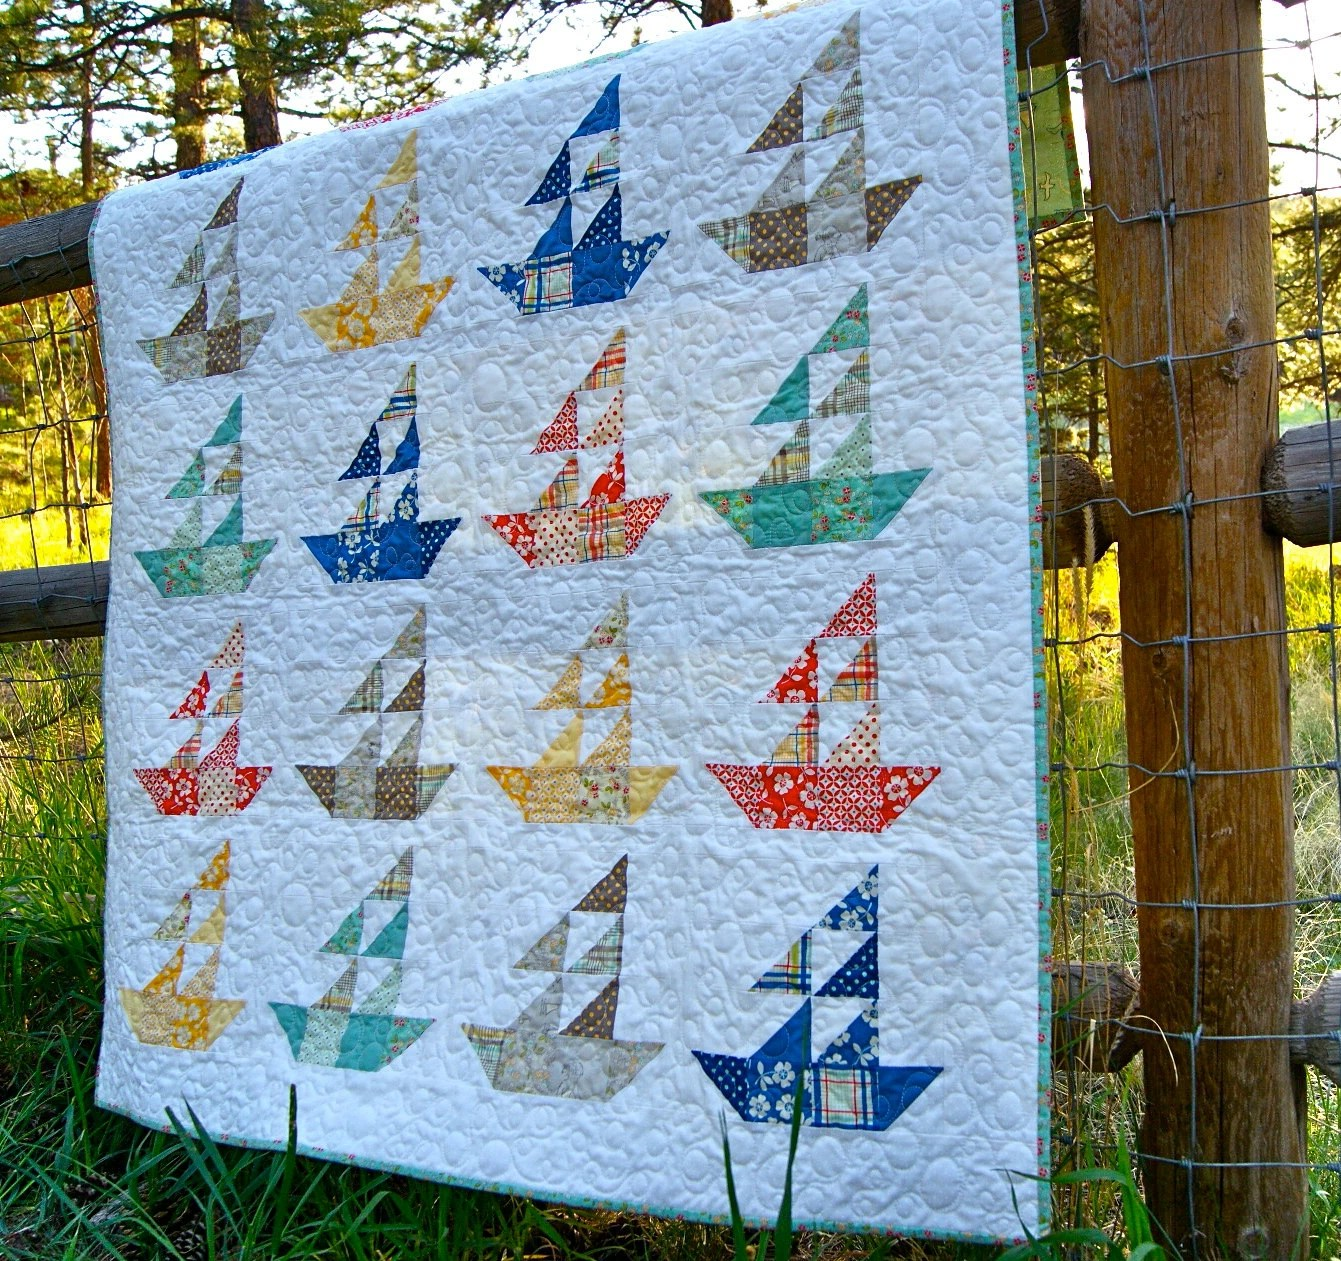 hanging chair stand white vitra office price quilt baby lap handmade seaside sailboats riley blake summer